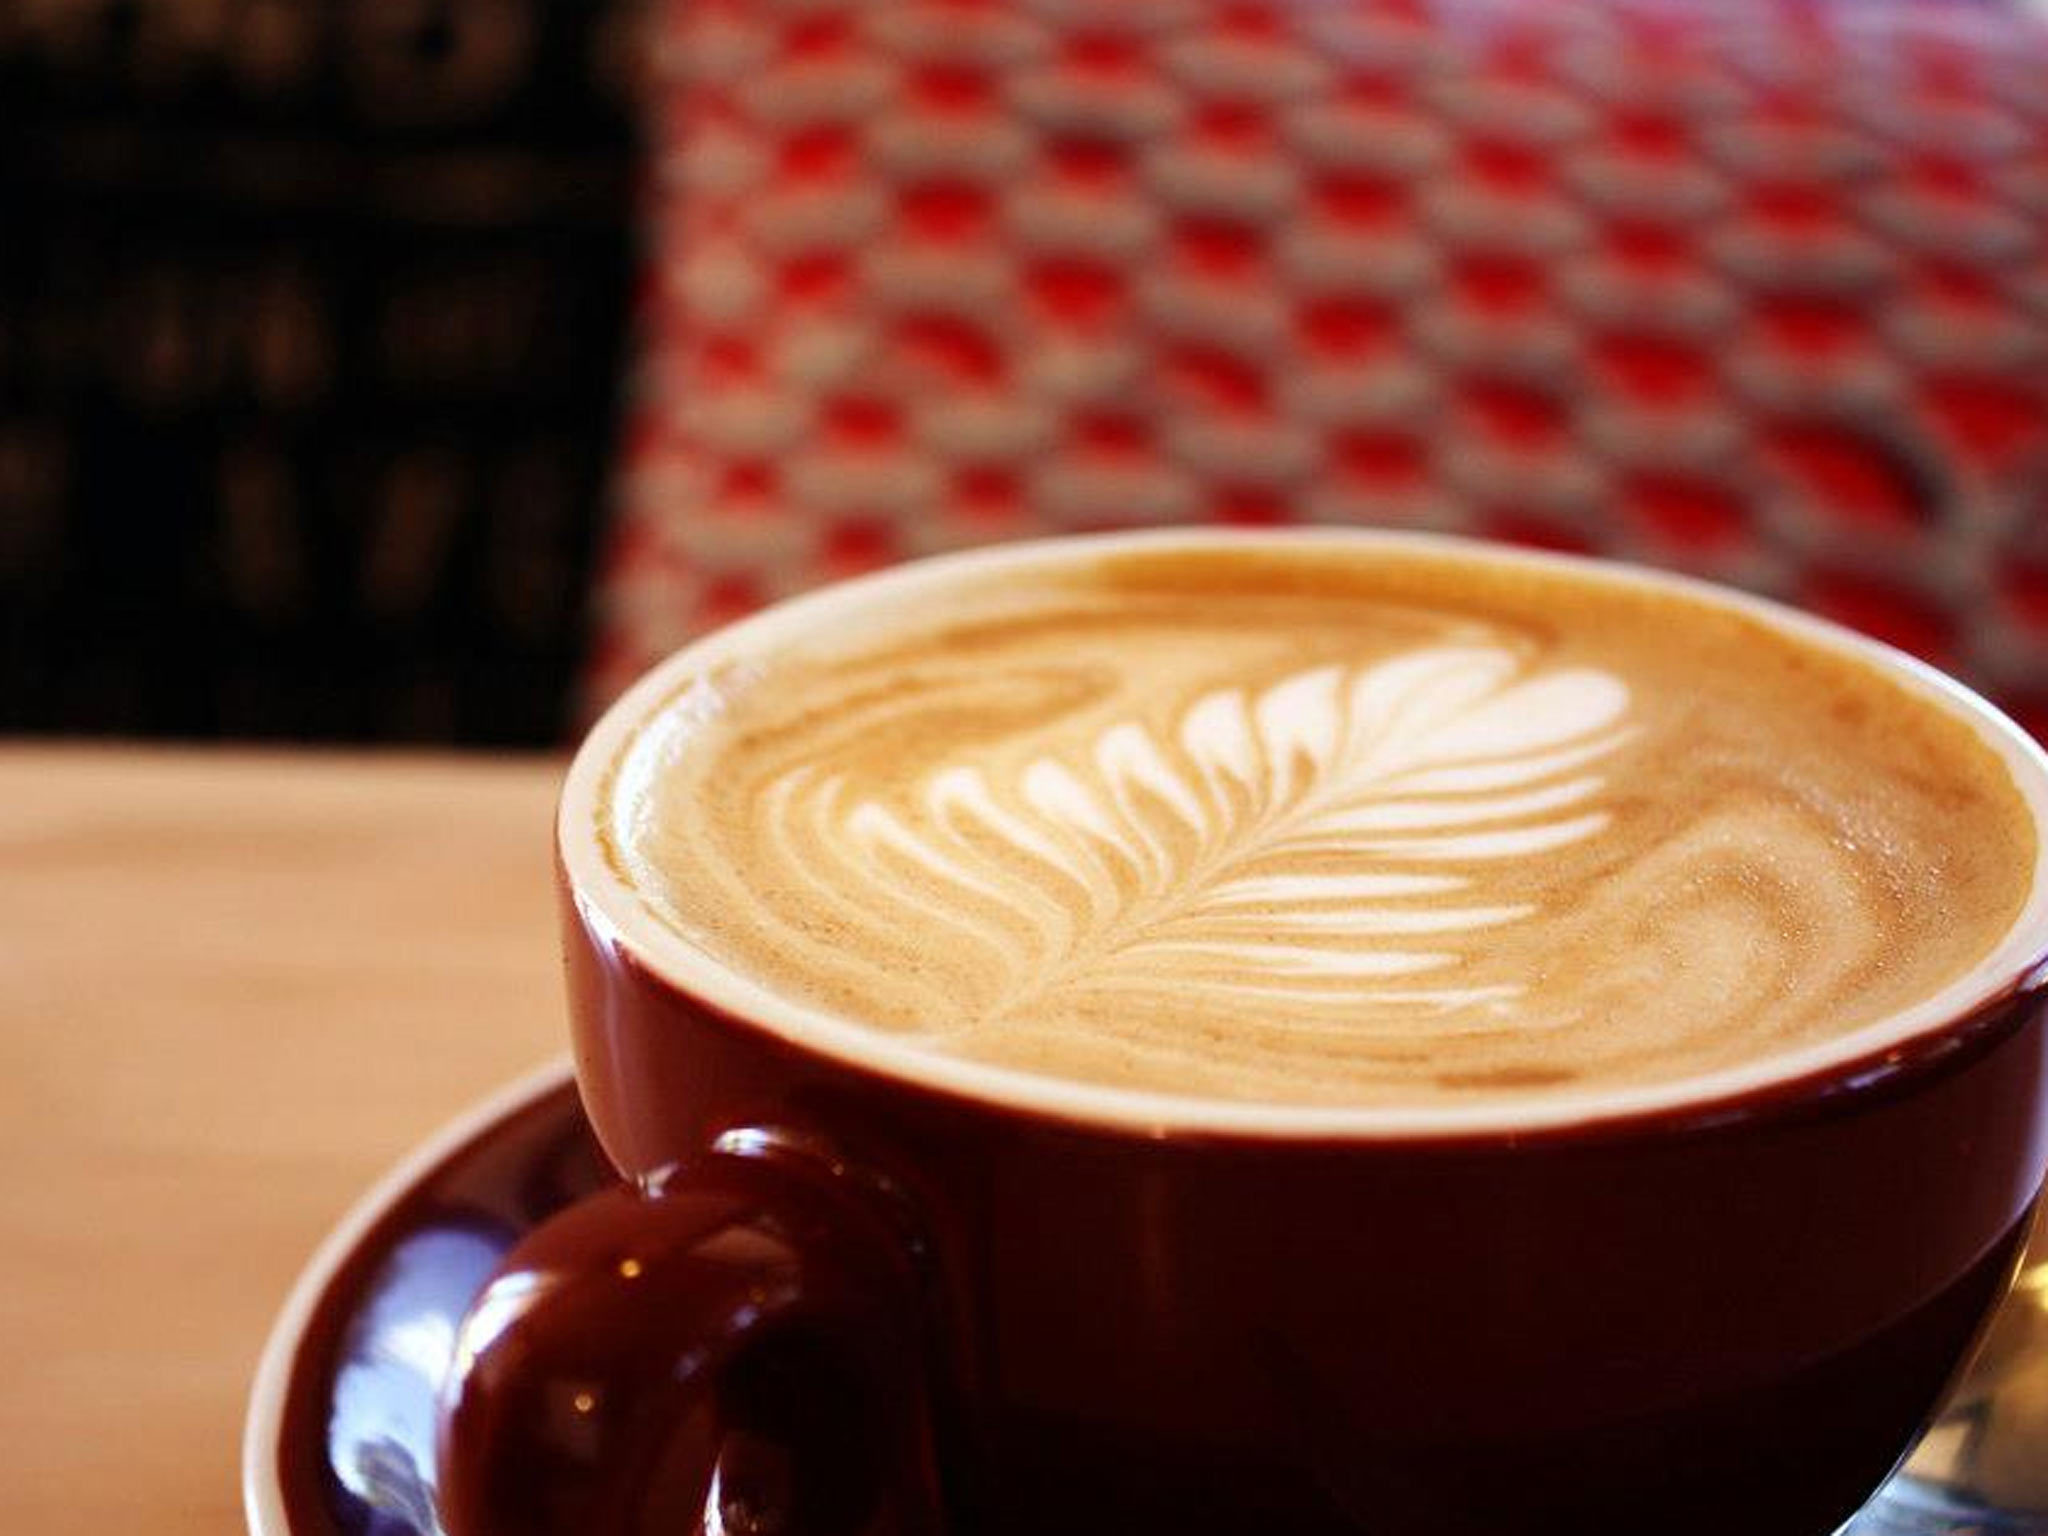 The best cafés in Canberra